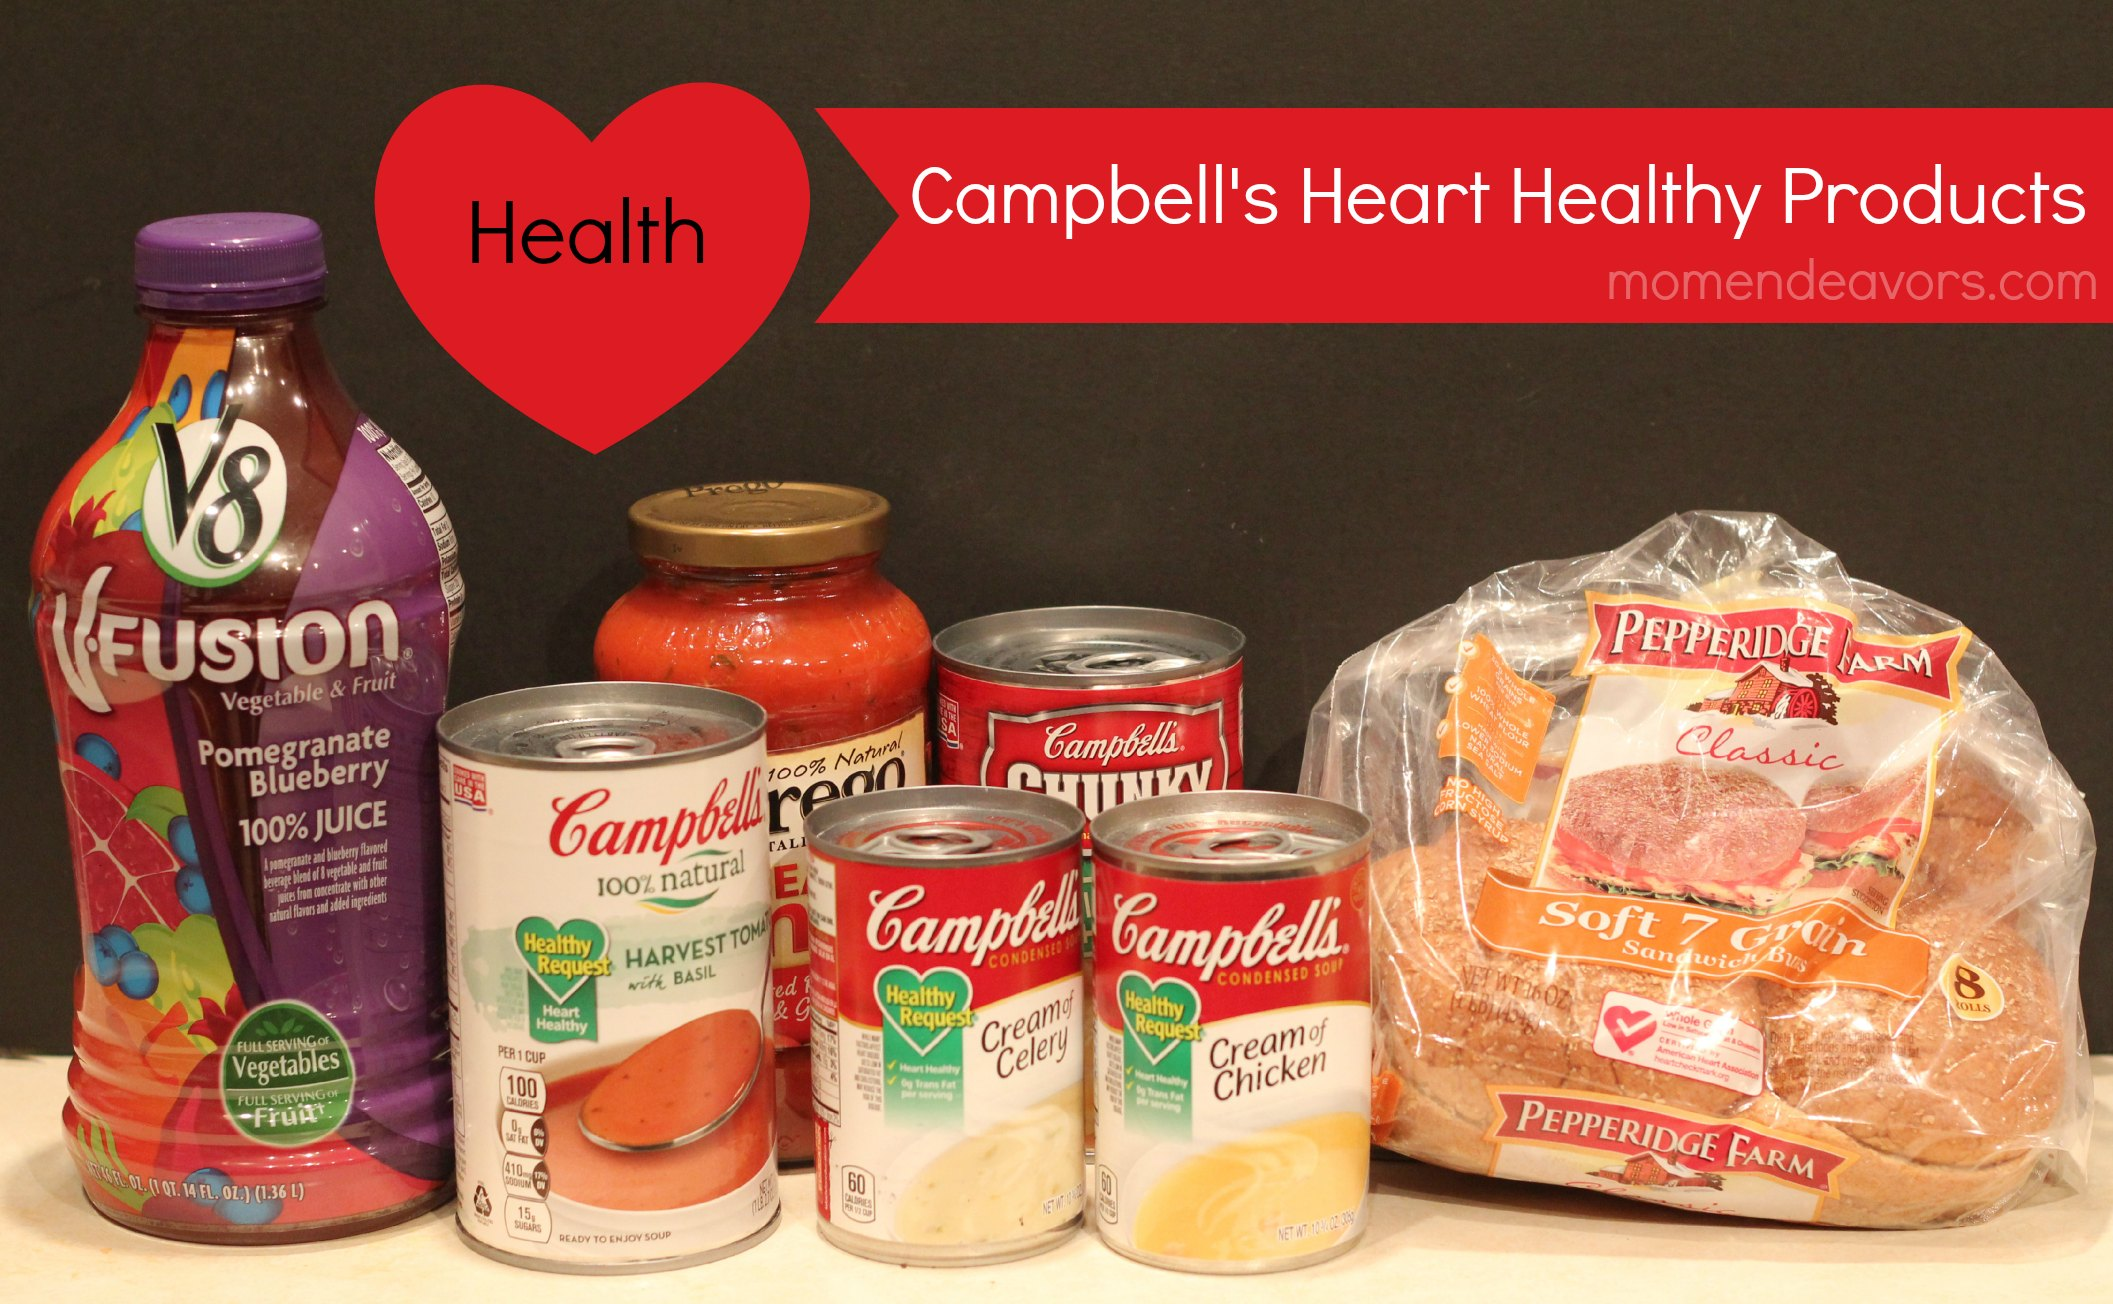 Campbellu0027s Heart Healthy Products